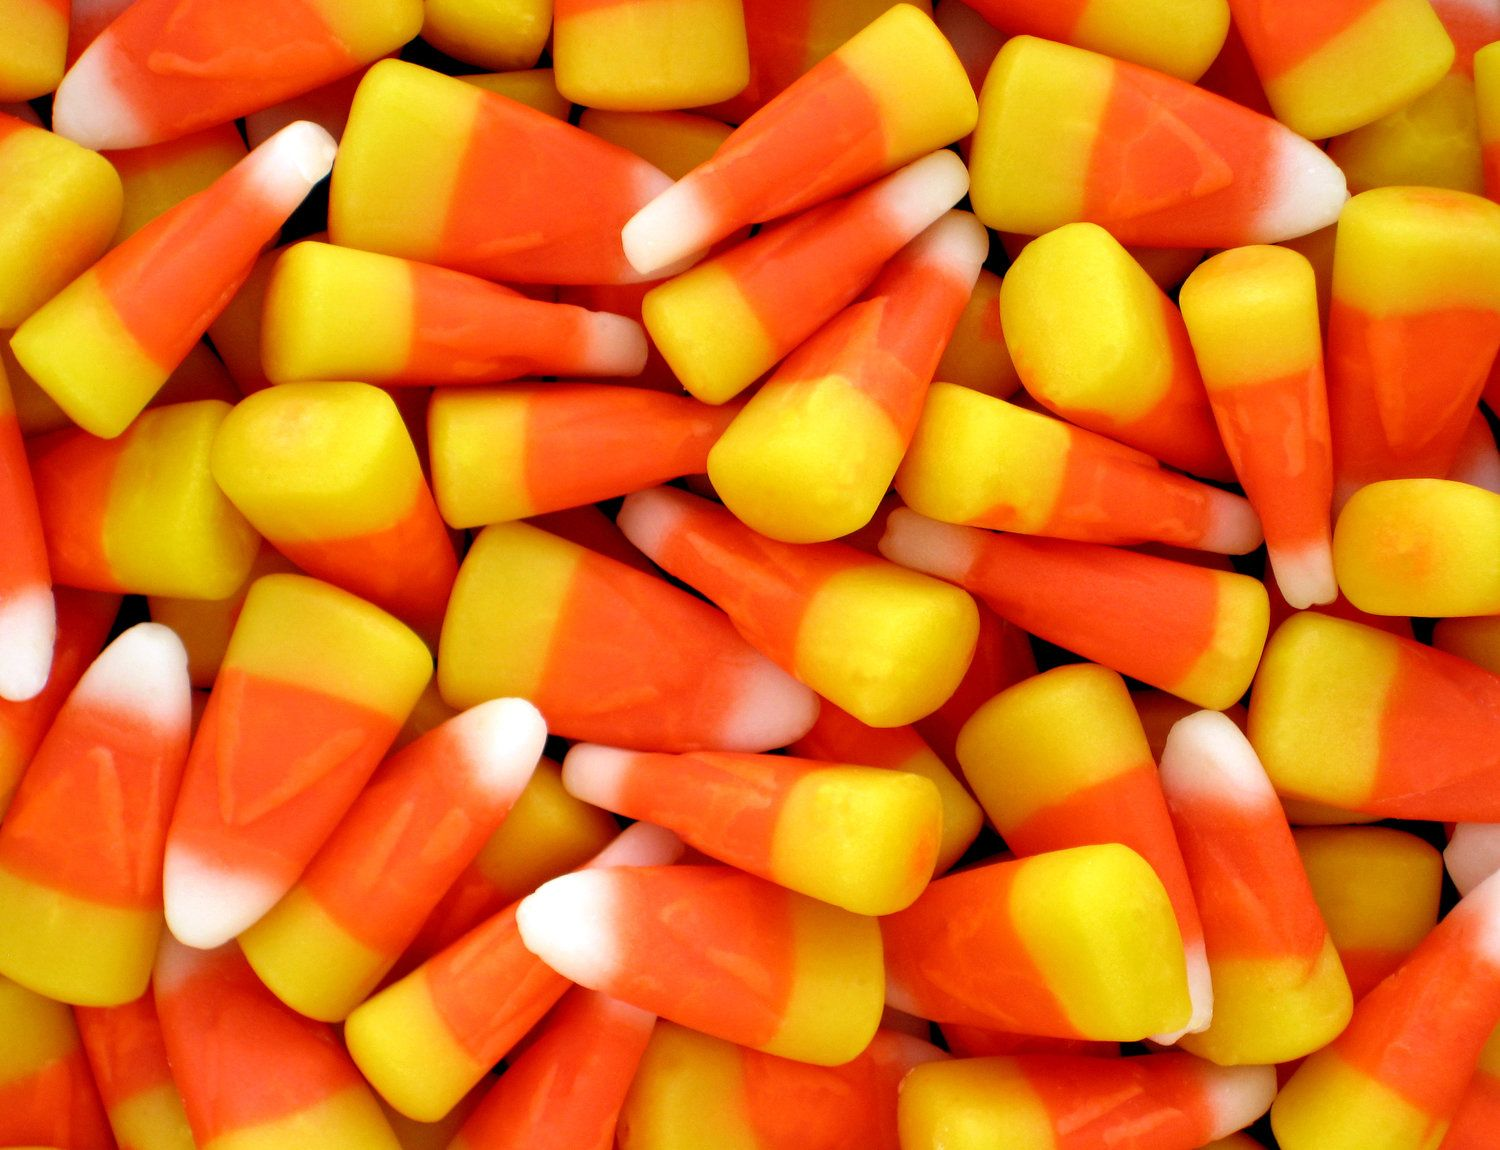 The Sweet Way Your Business Can Make a Difference This Halloween